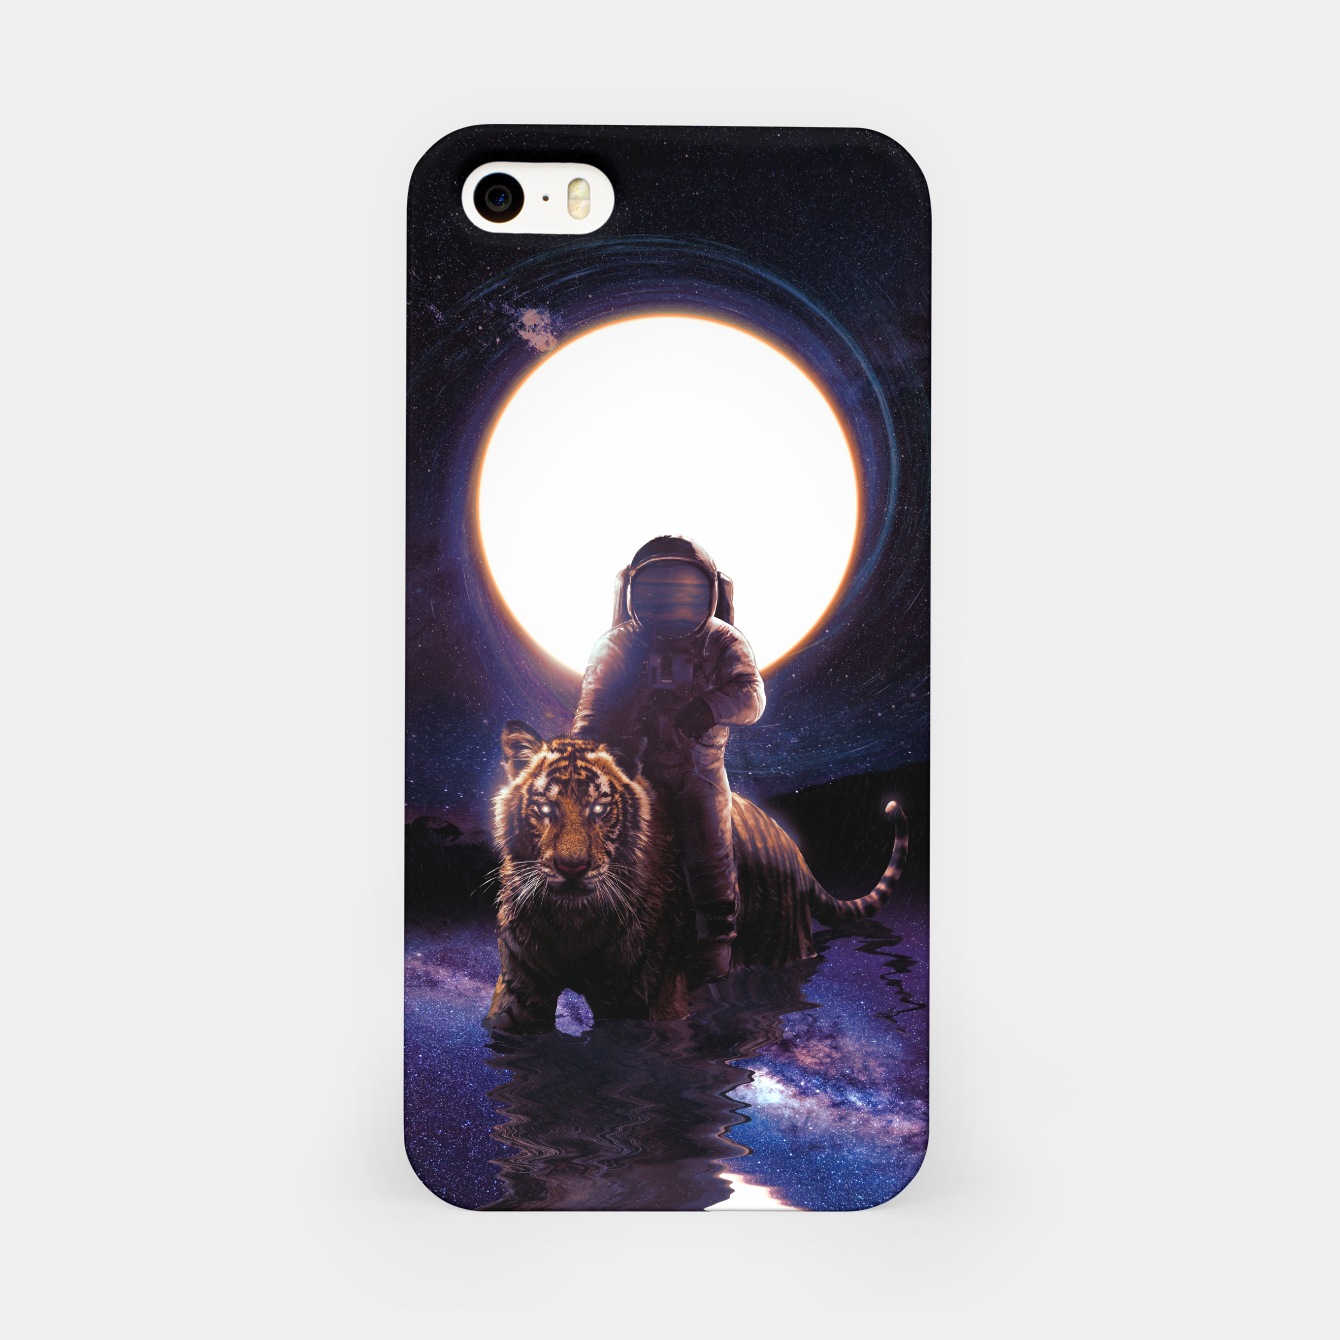 Foto Hunter iPhone Case - Live Heroes